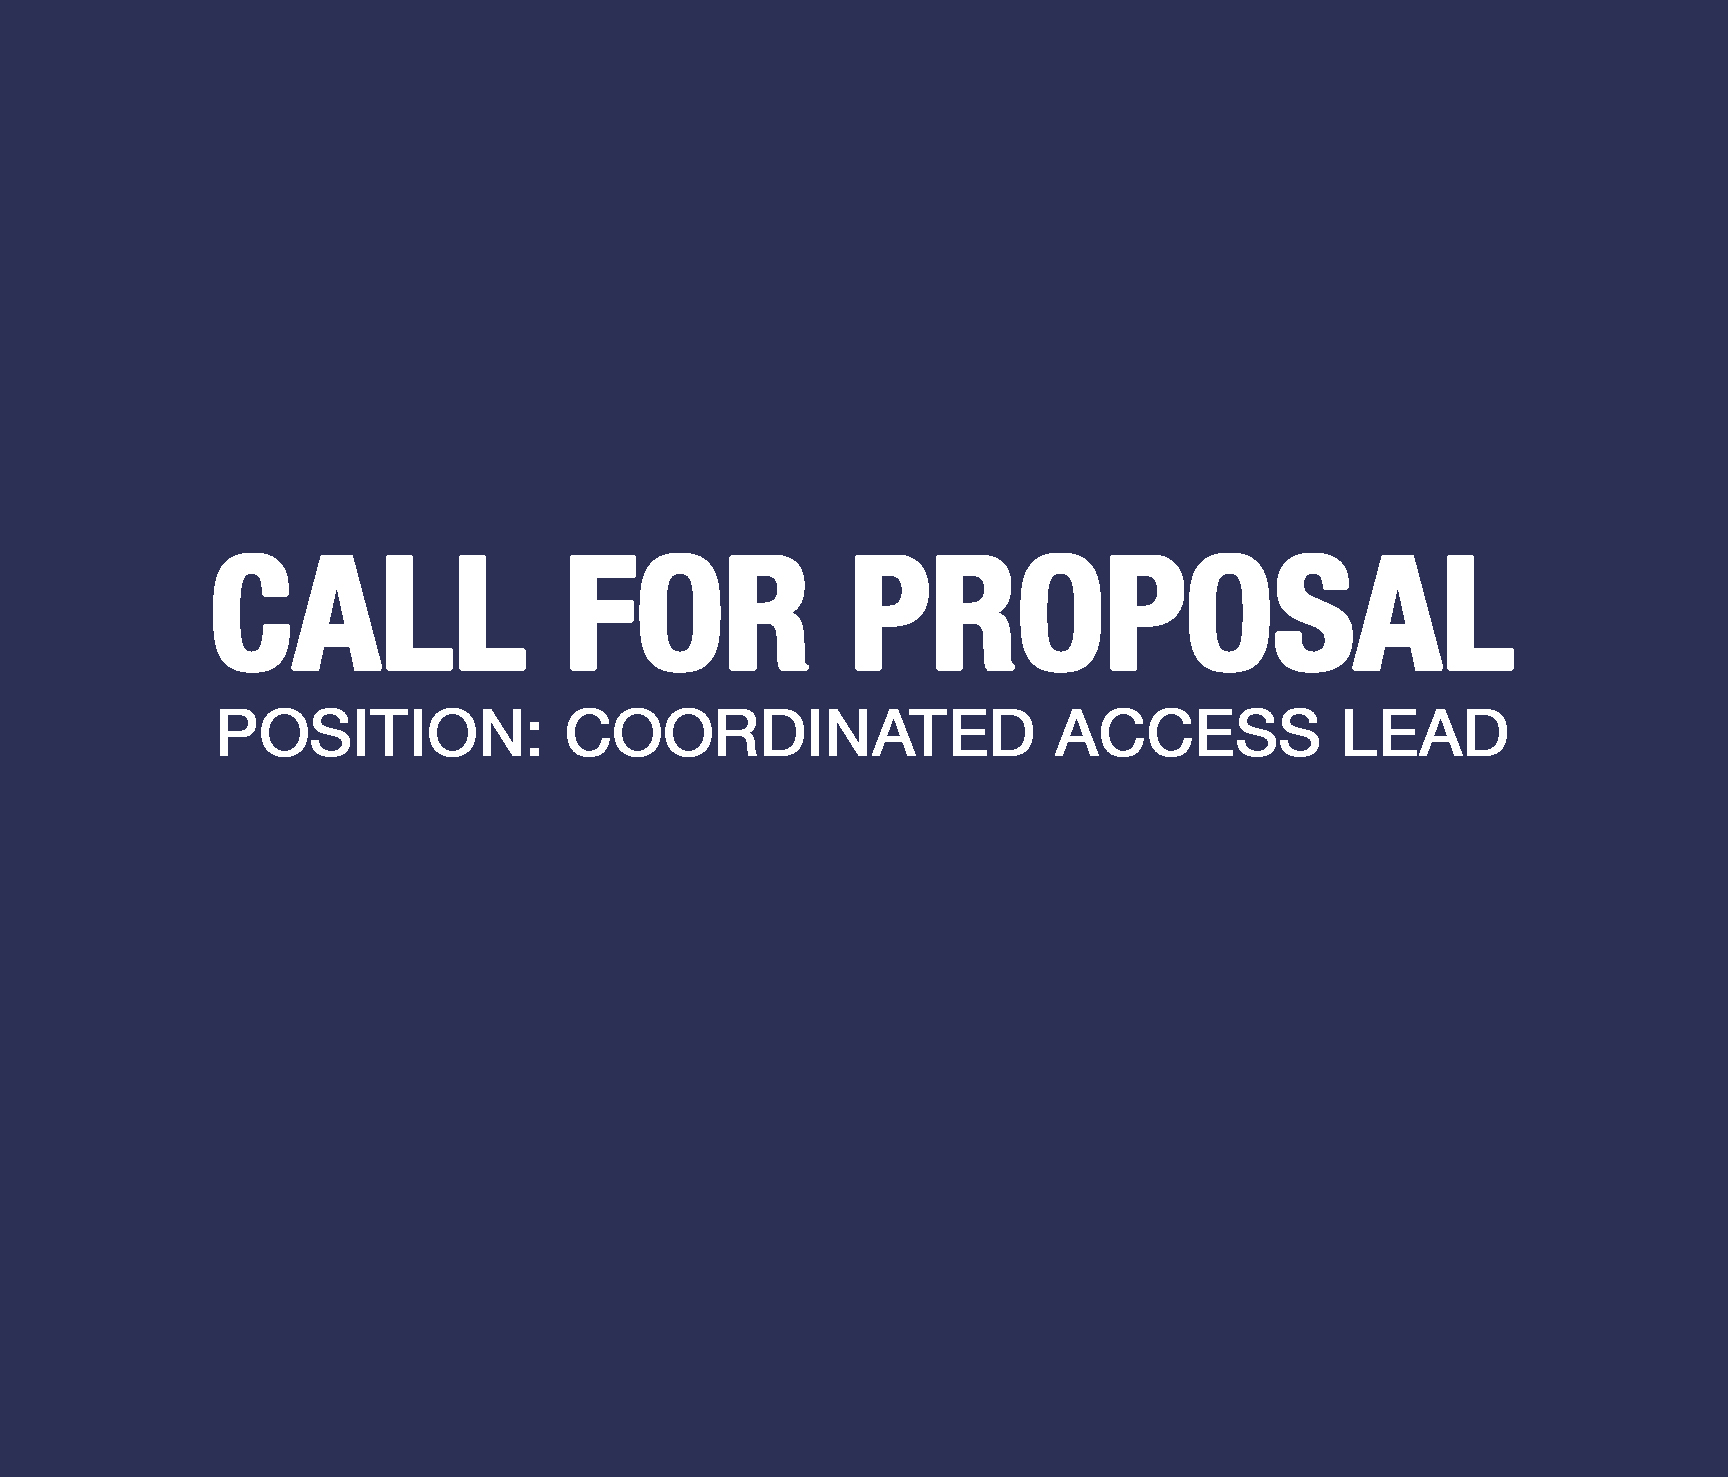 Call for proposal written in white with a blue backgound - United Way Central & Northern Vancouver Island (UWCNVI)